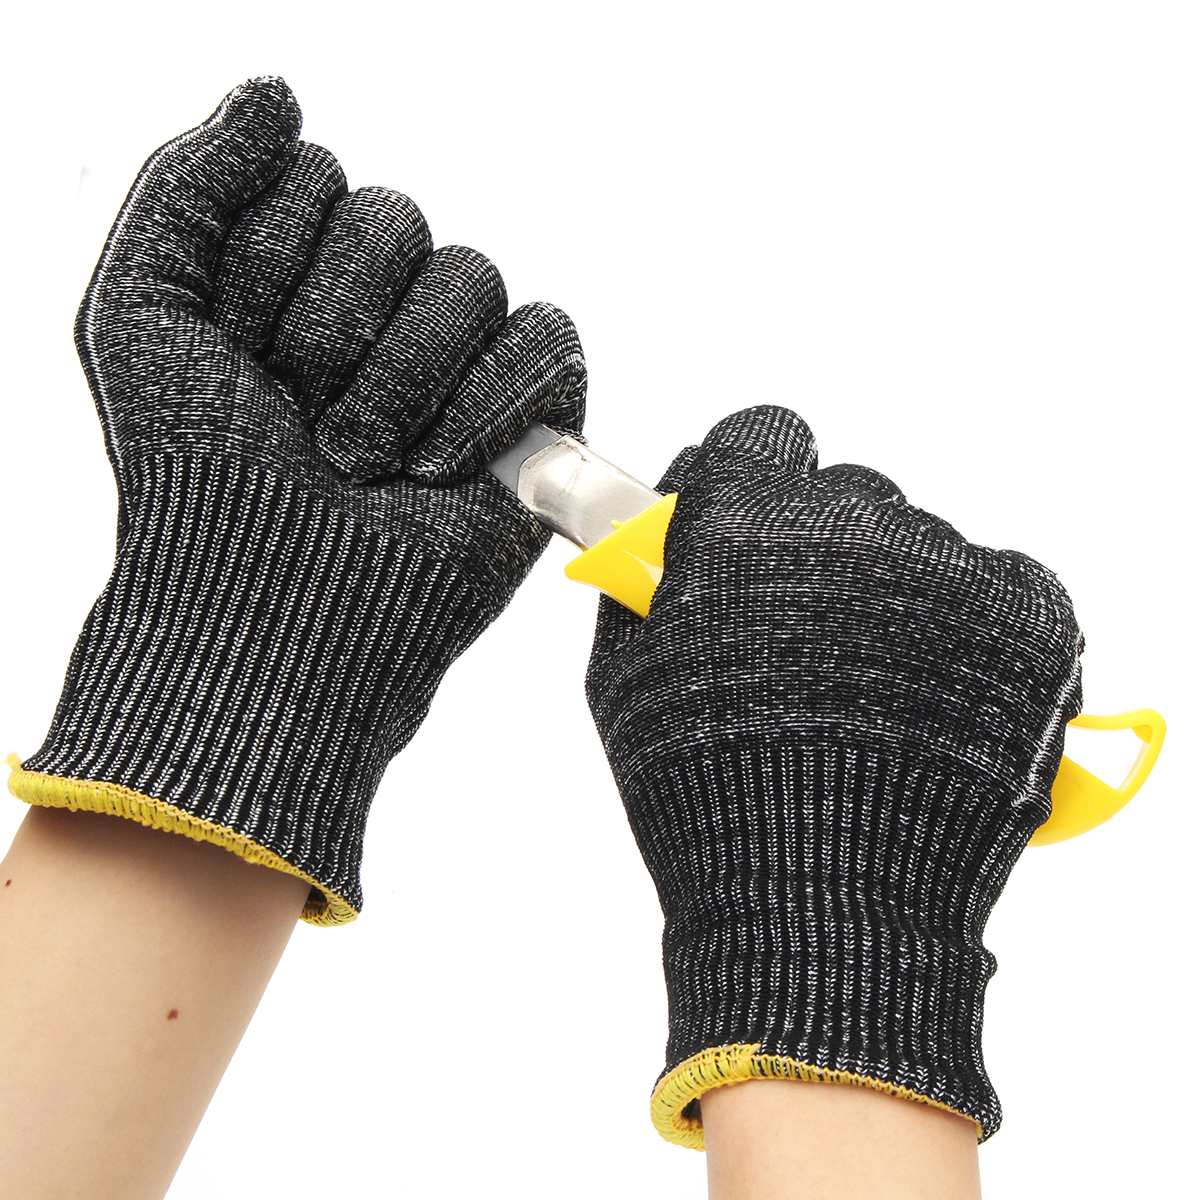 240mm Large Safety Cut Stab Proof Resistant Protective Mesh Butcher Gloves